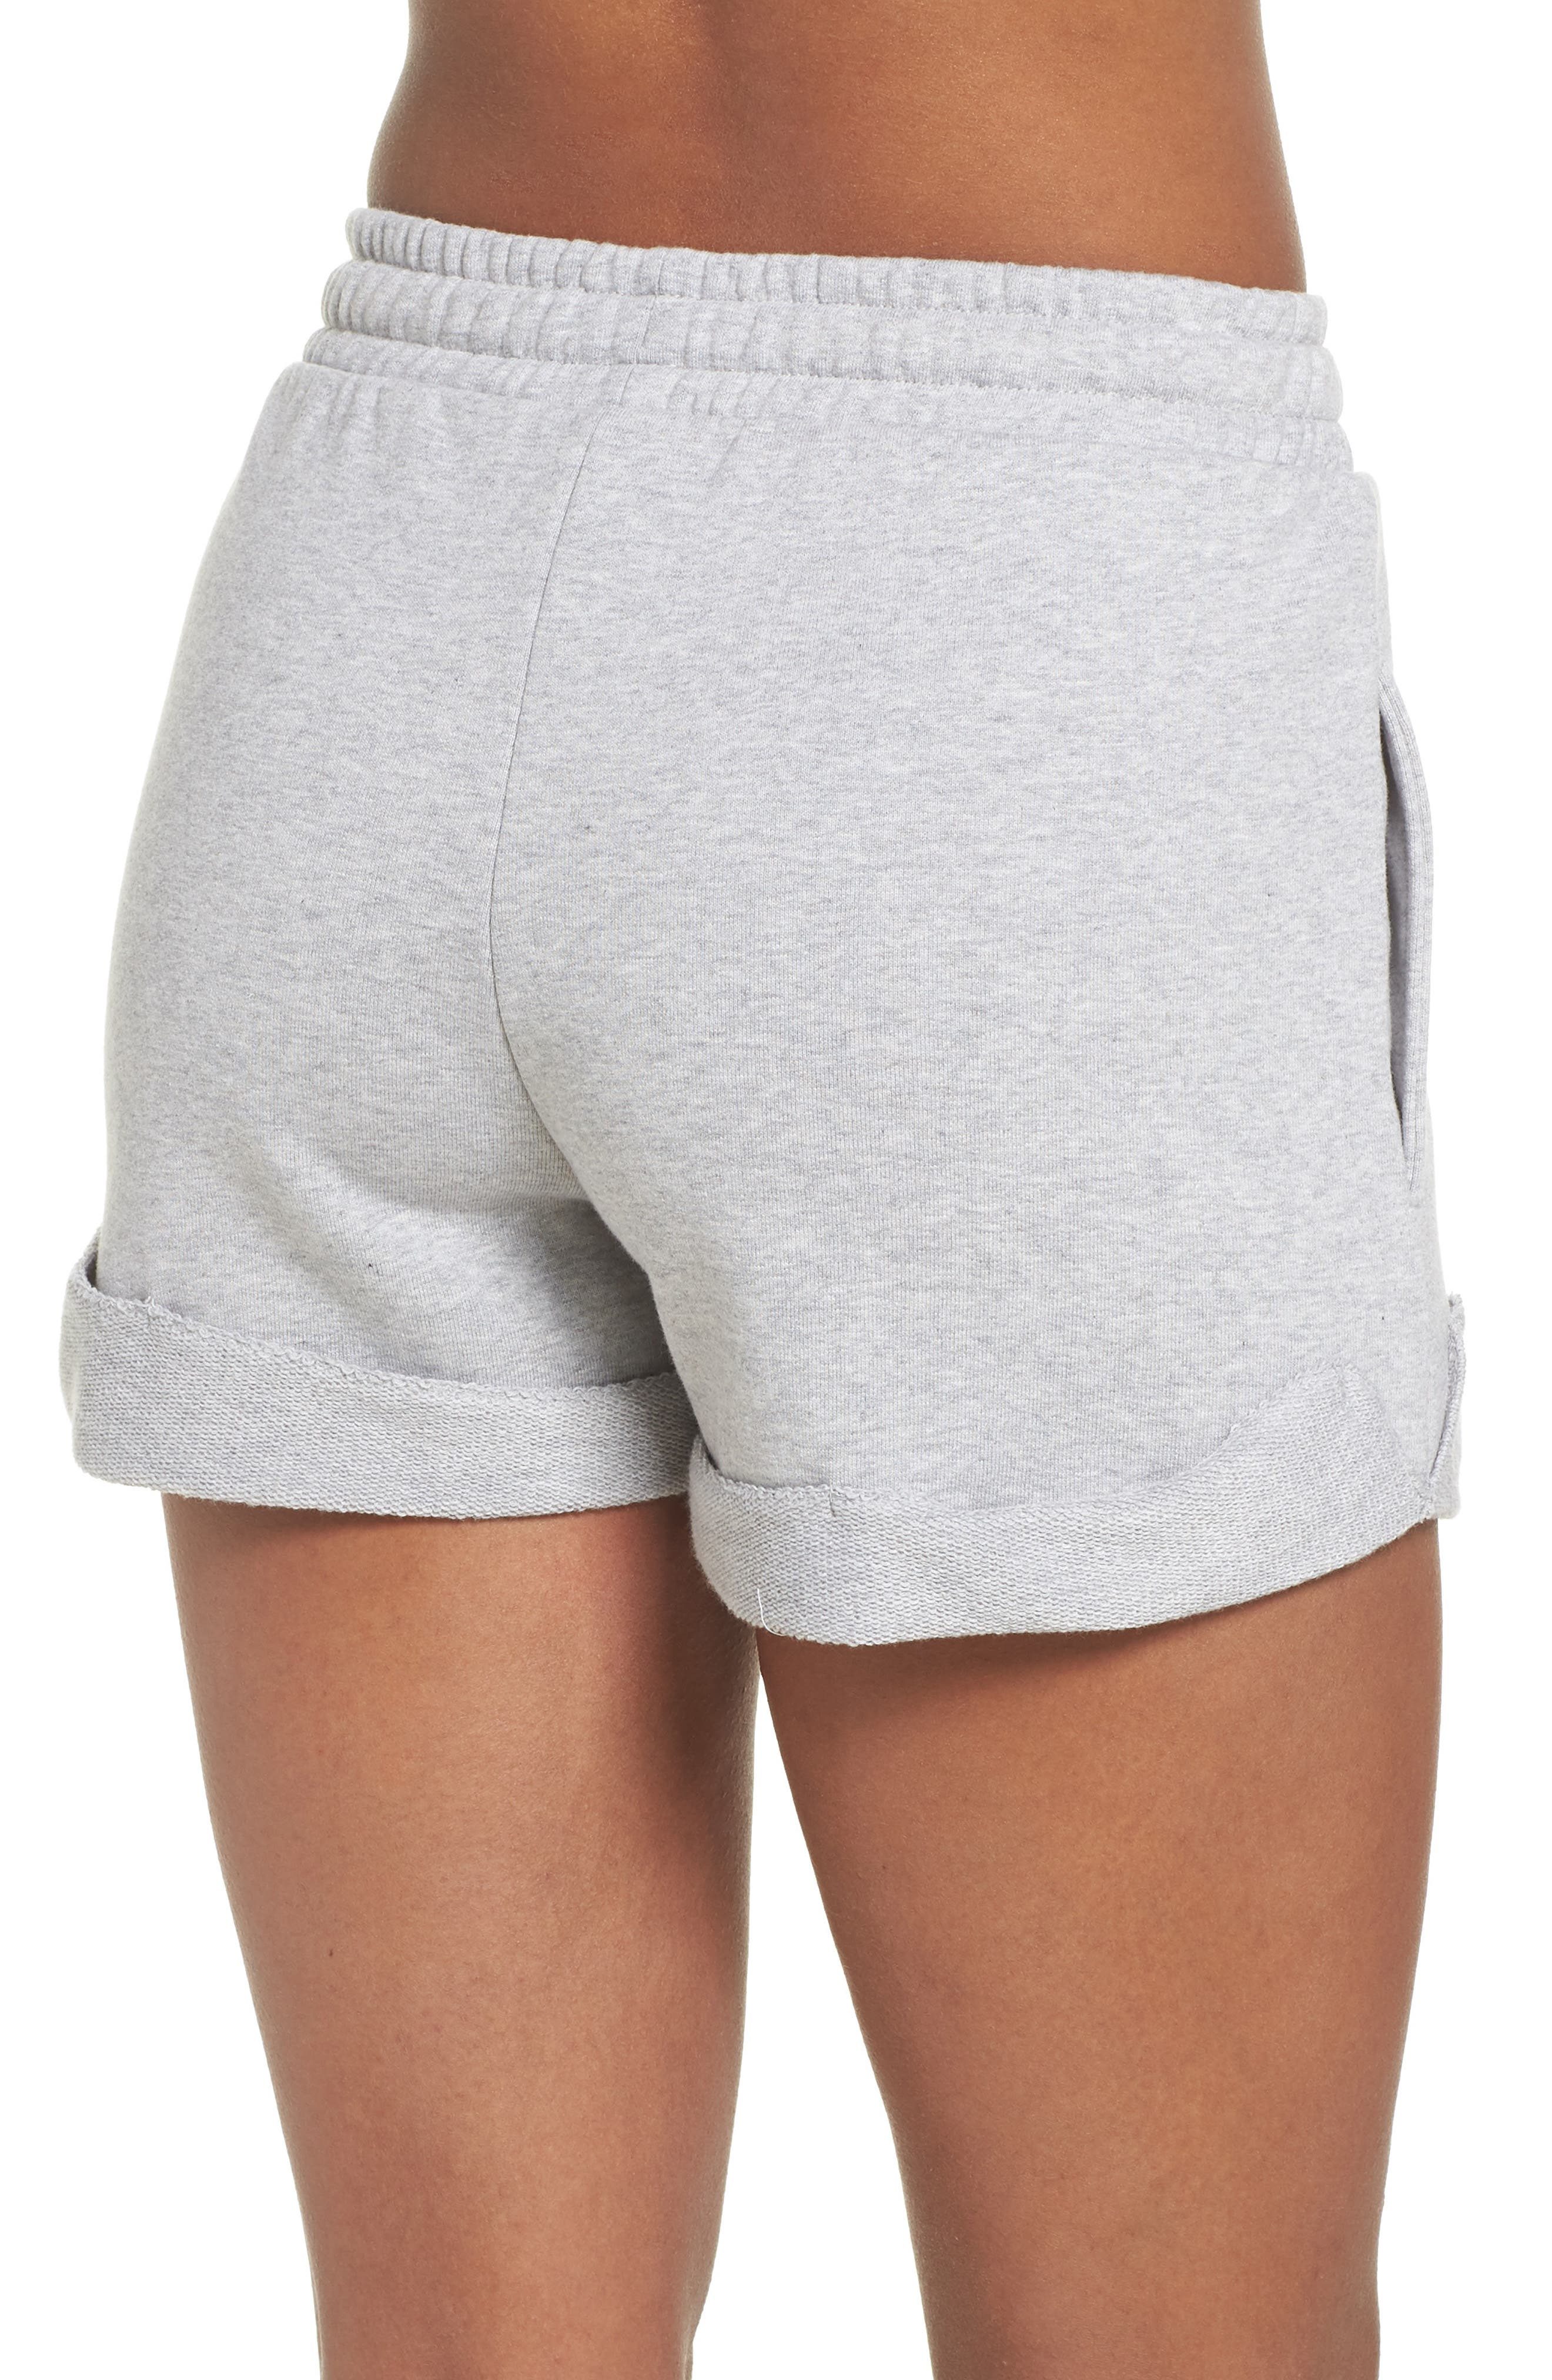 French Terry High Waist Shorts,                             Alternate thumbnail 2, color,                             020